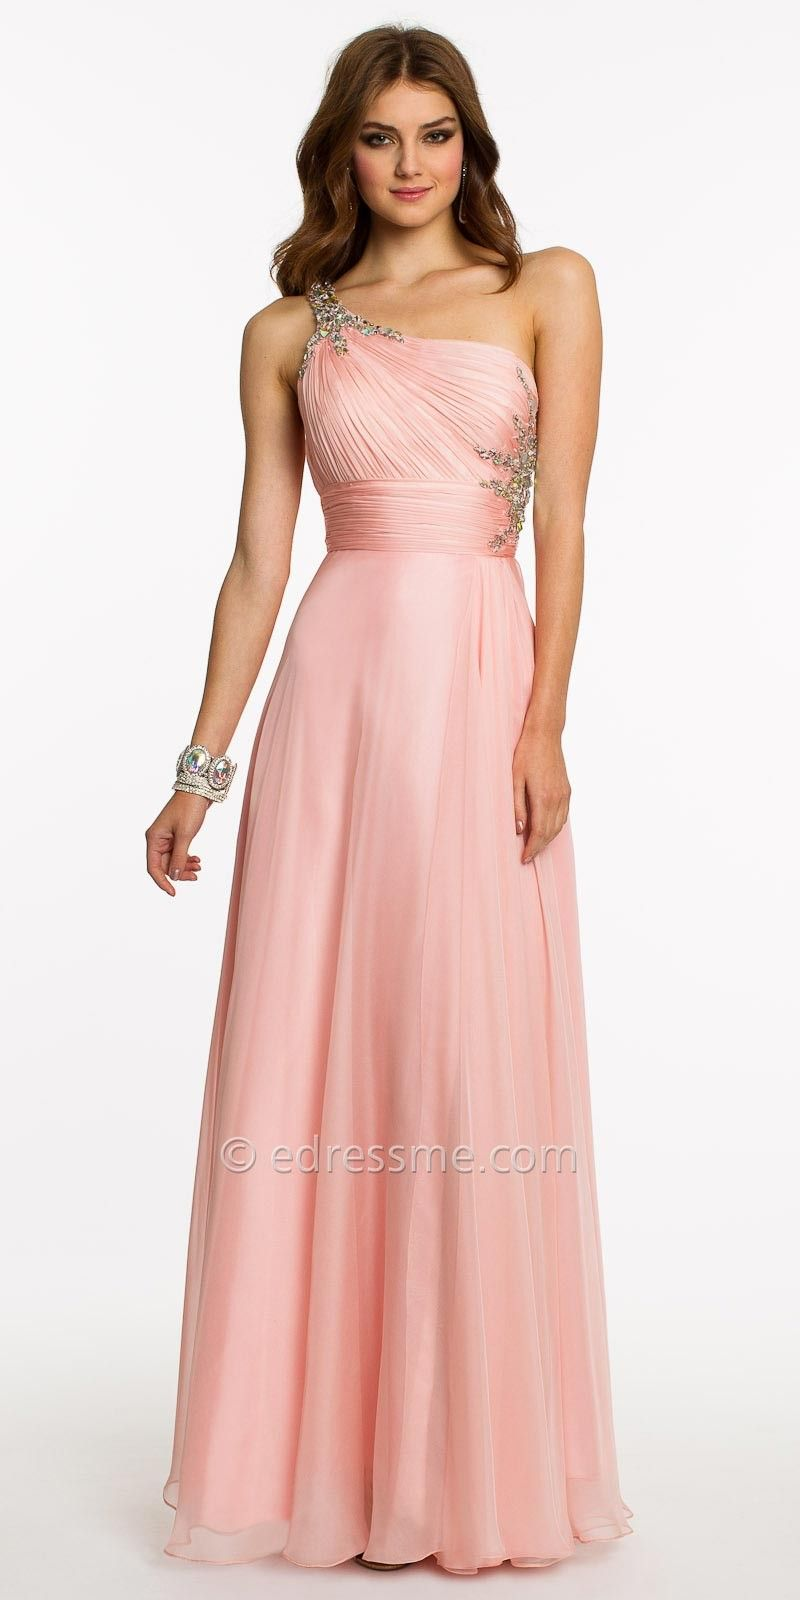 grecian dress | Grecian One Shoulder Dress With Beading Prom Dress ...